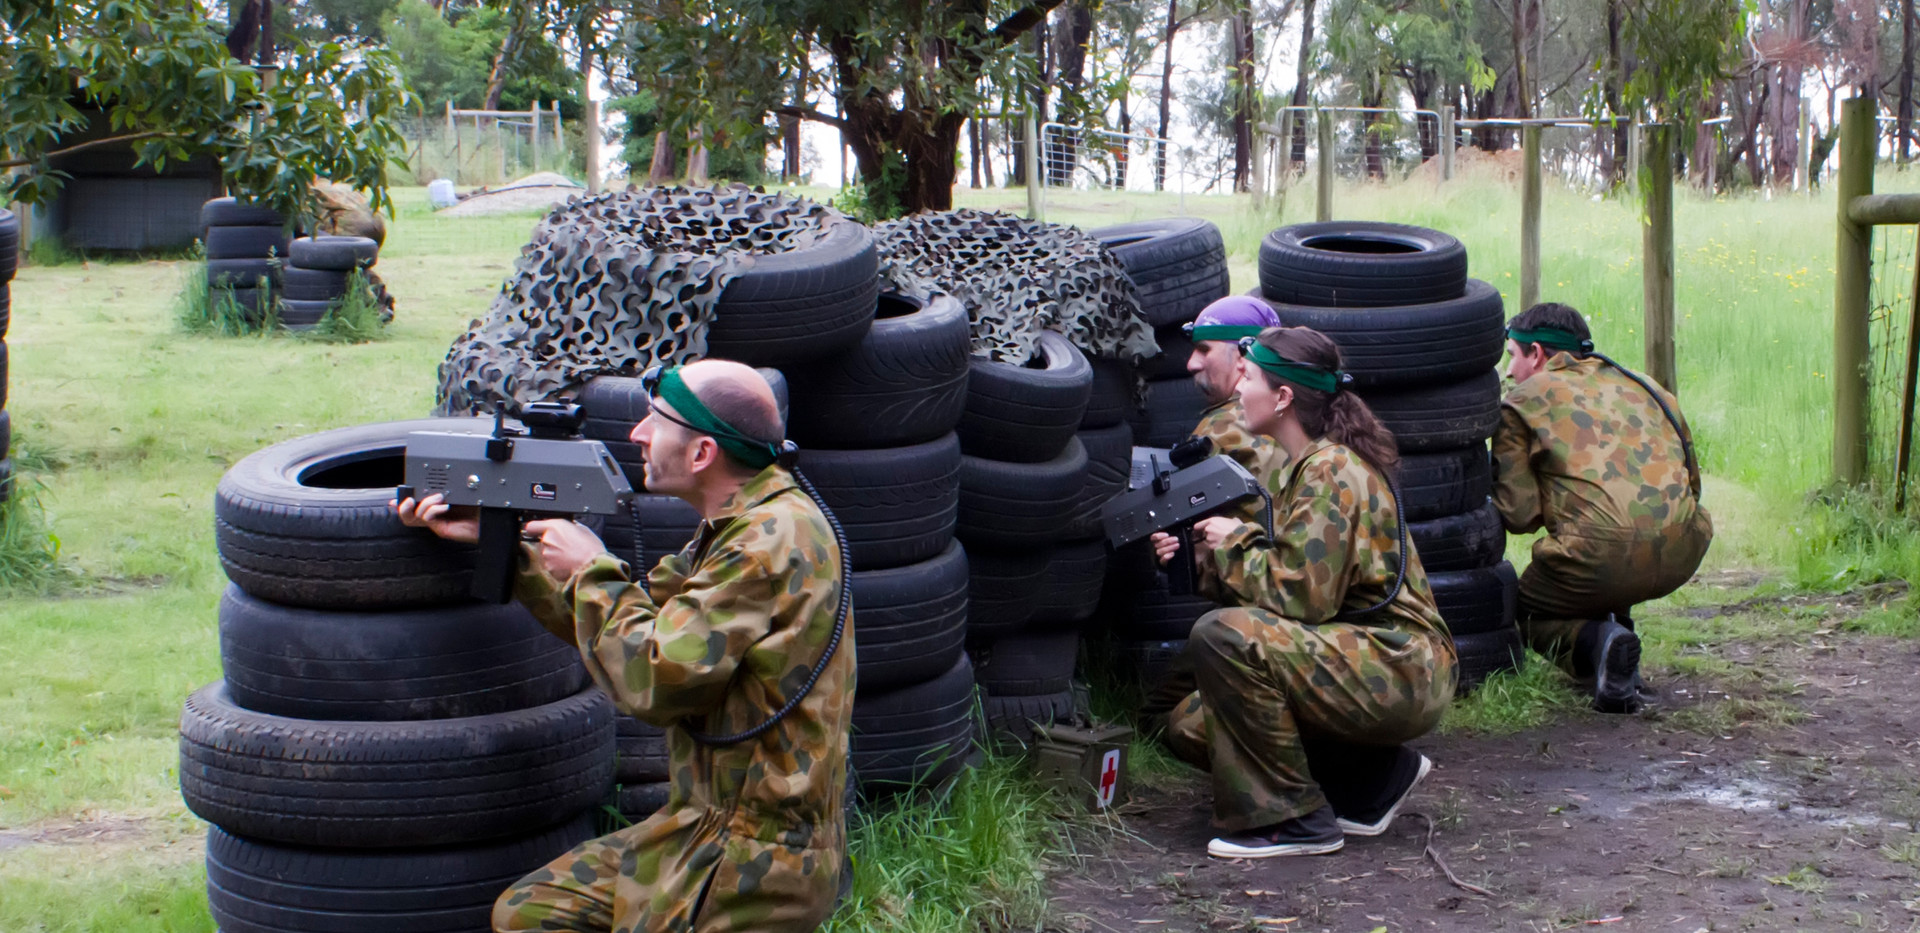 Laser Skirmish - Activity available for booking